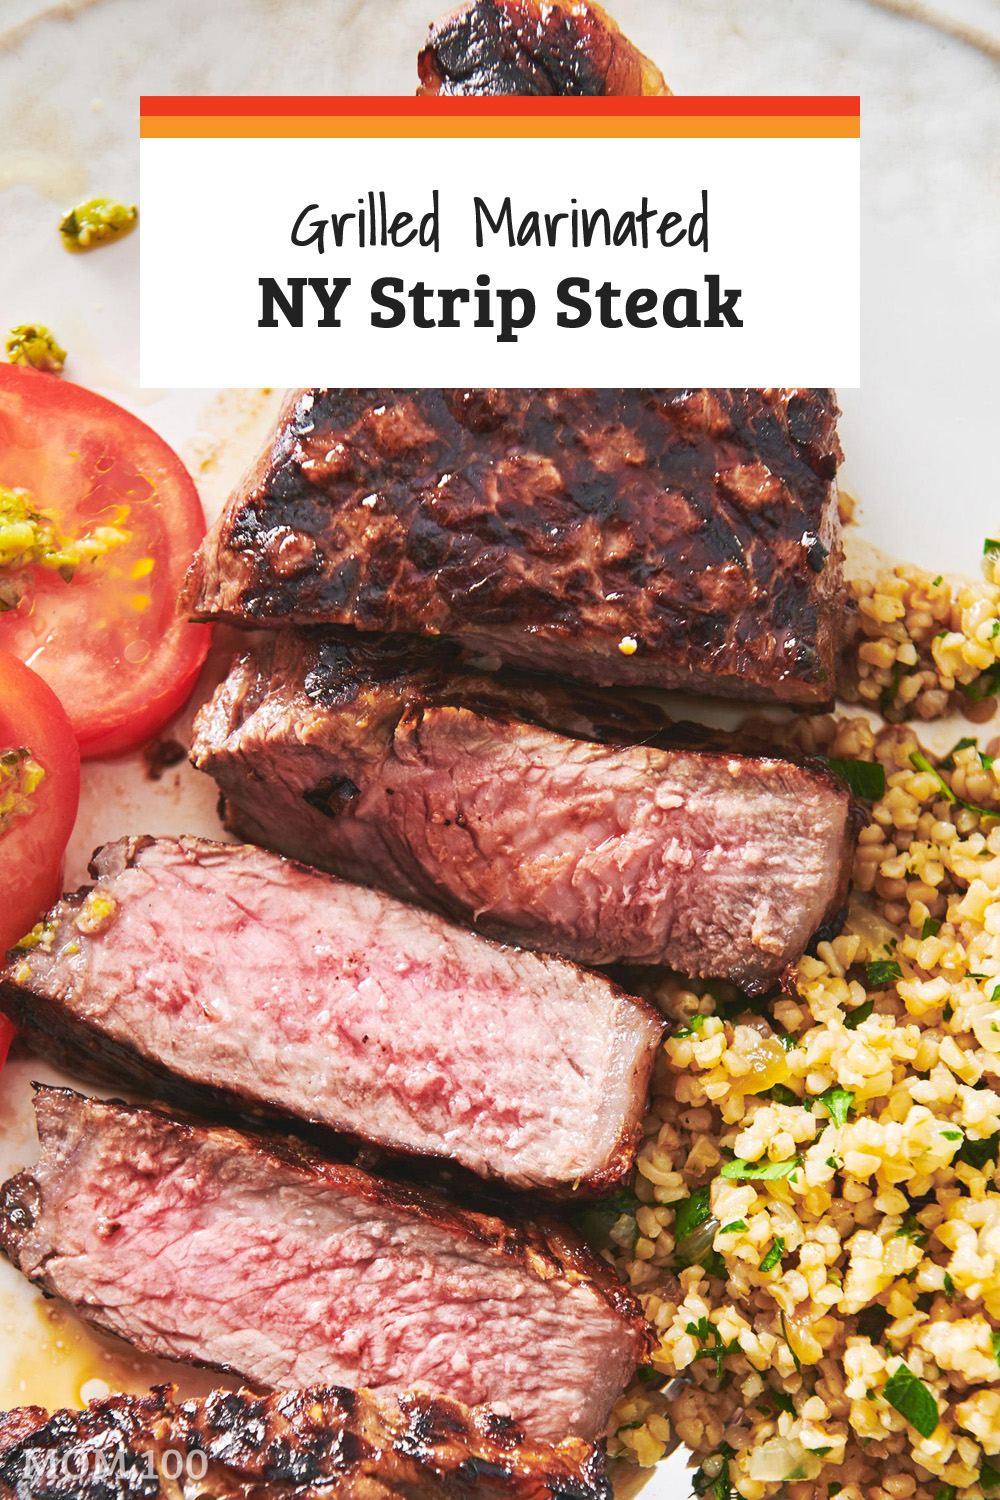 This Grilled Marinated New York Strip Steak is steak nirvana: nicely marbled, full of flavor and seared on the grill or on a cast iron skillet. #steak #nystripsteak